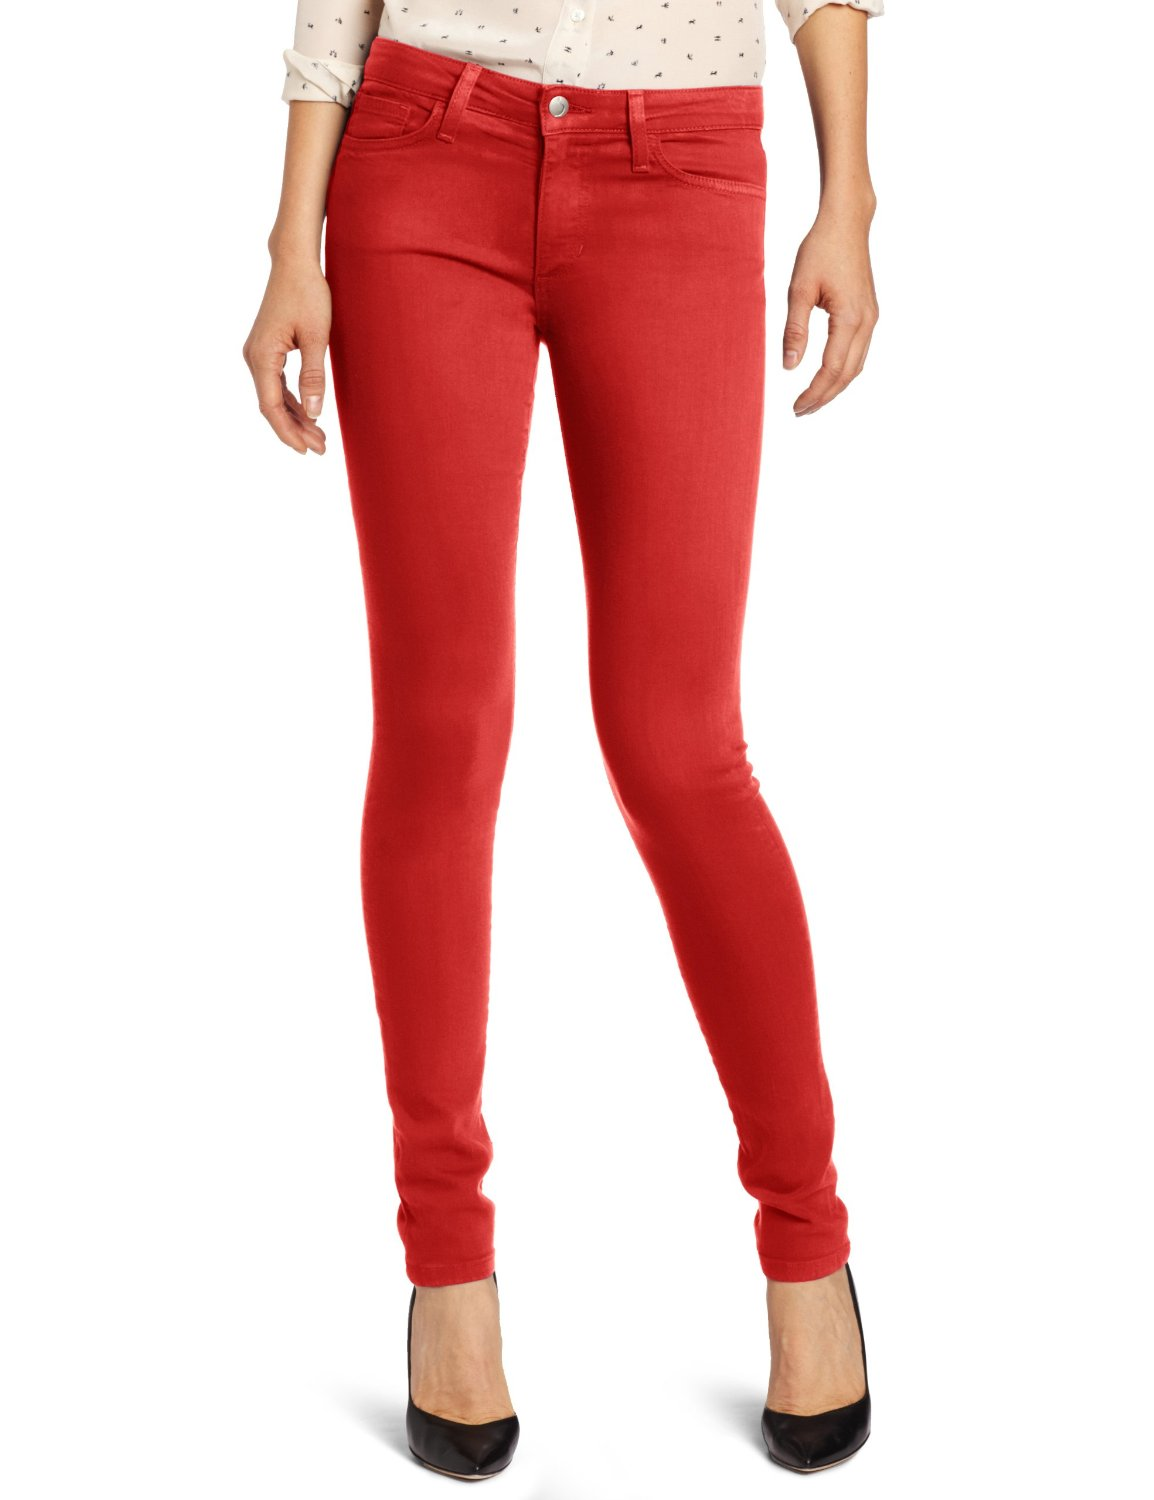 5 Latest Ladies Jeans Styles and collection 2013-14 | Fashion Of Indian